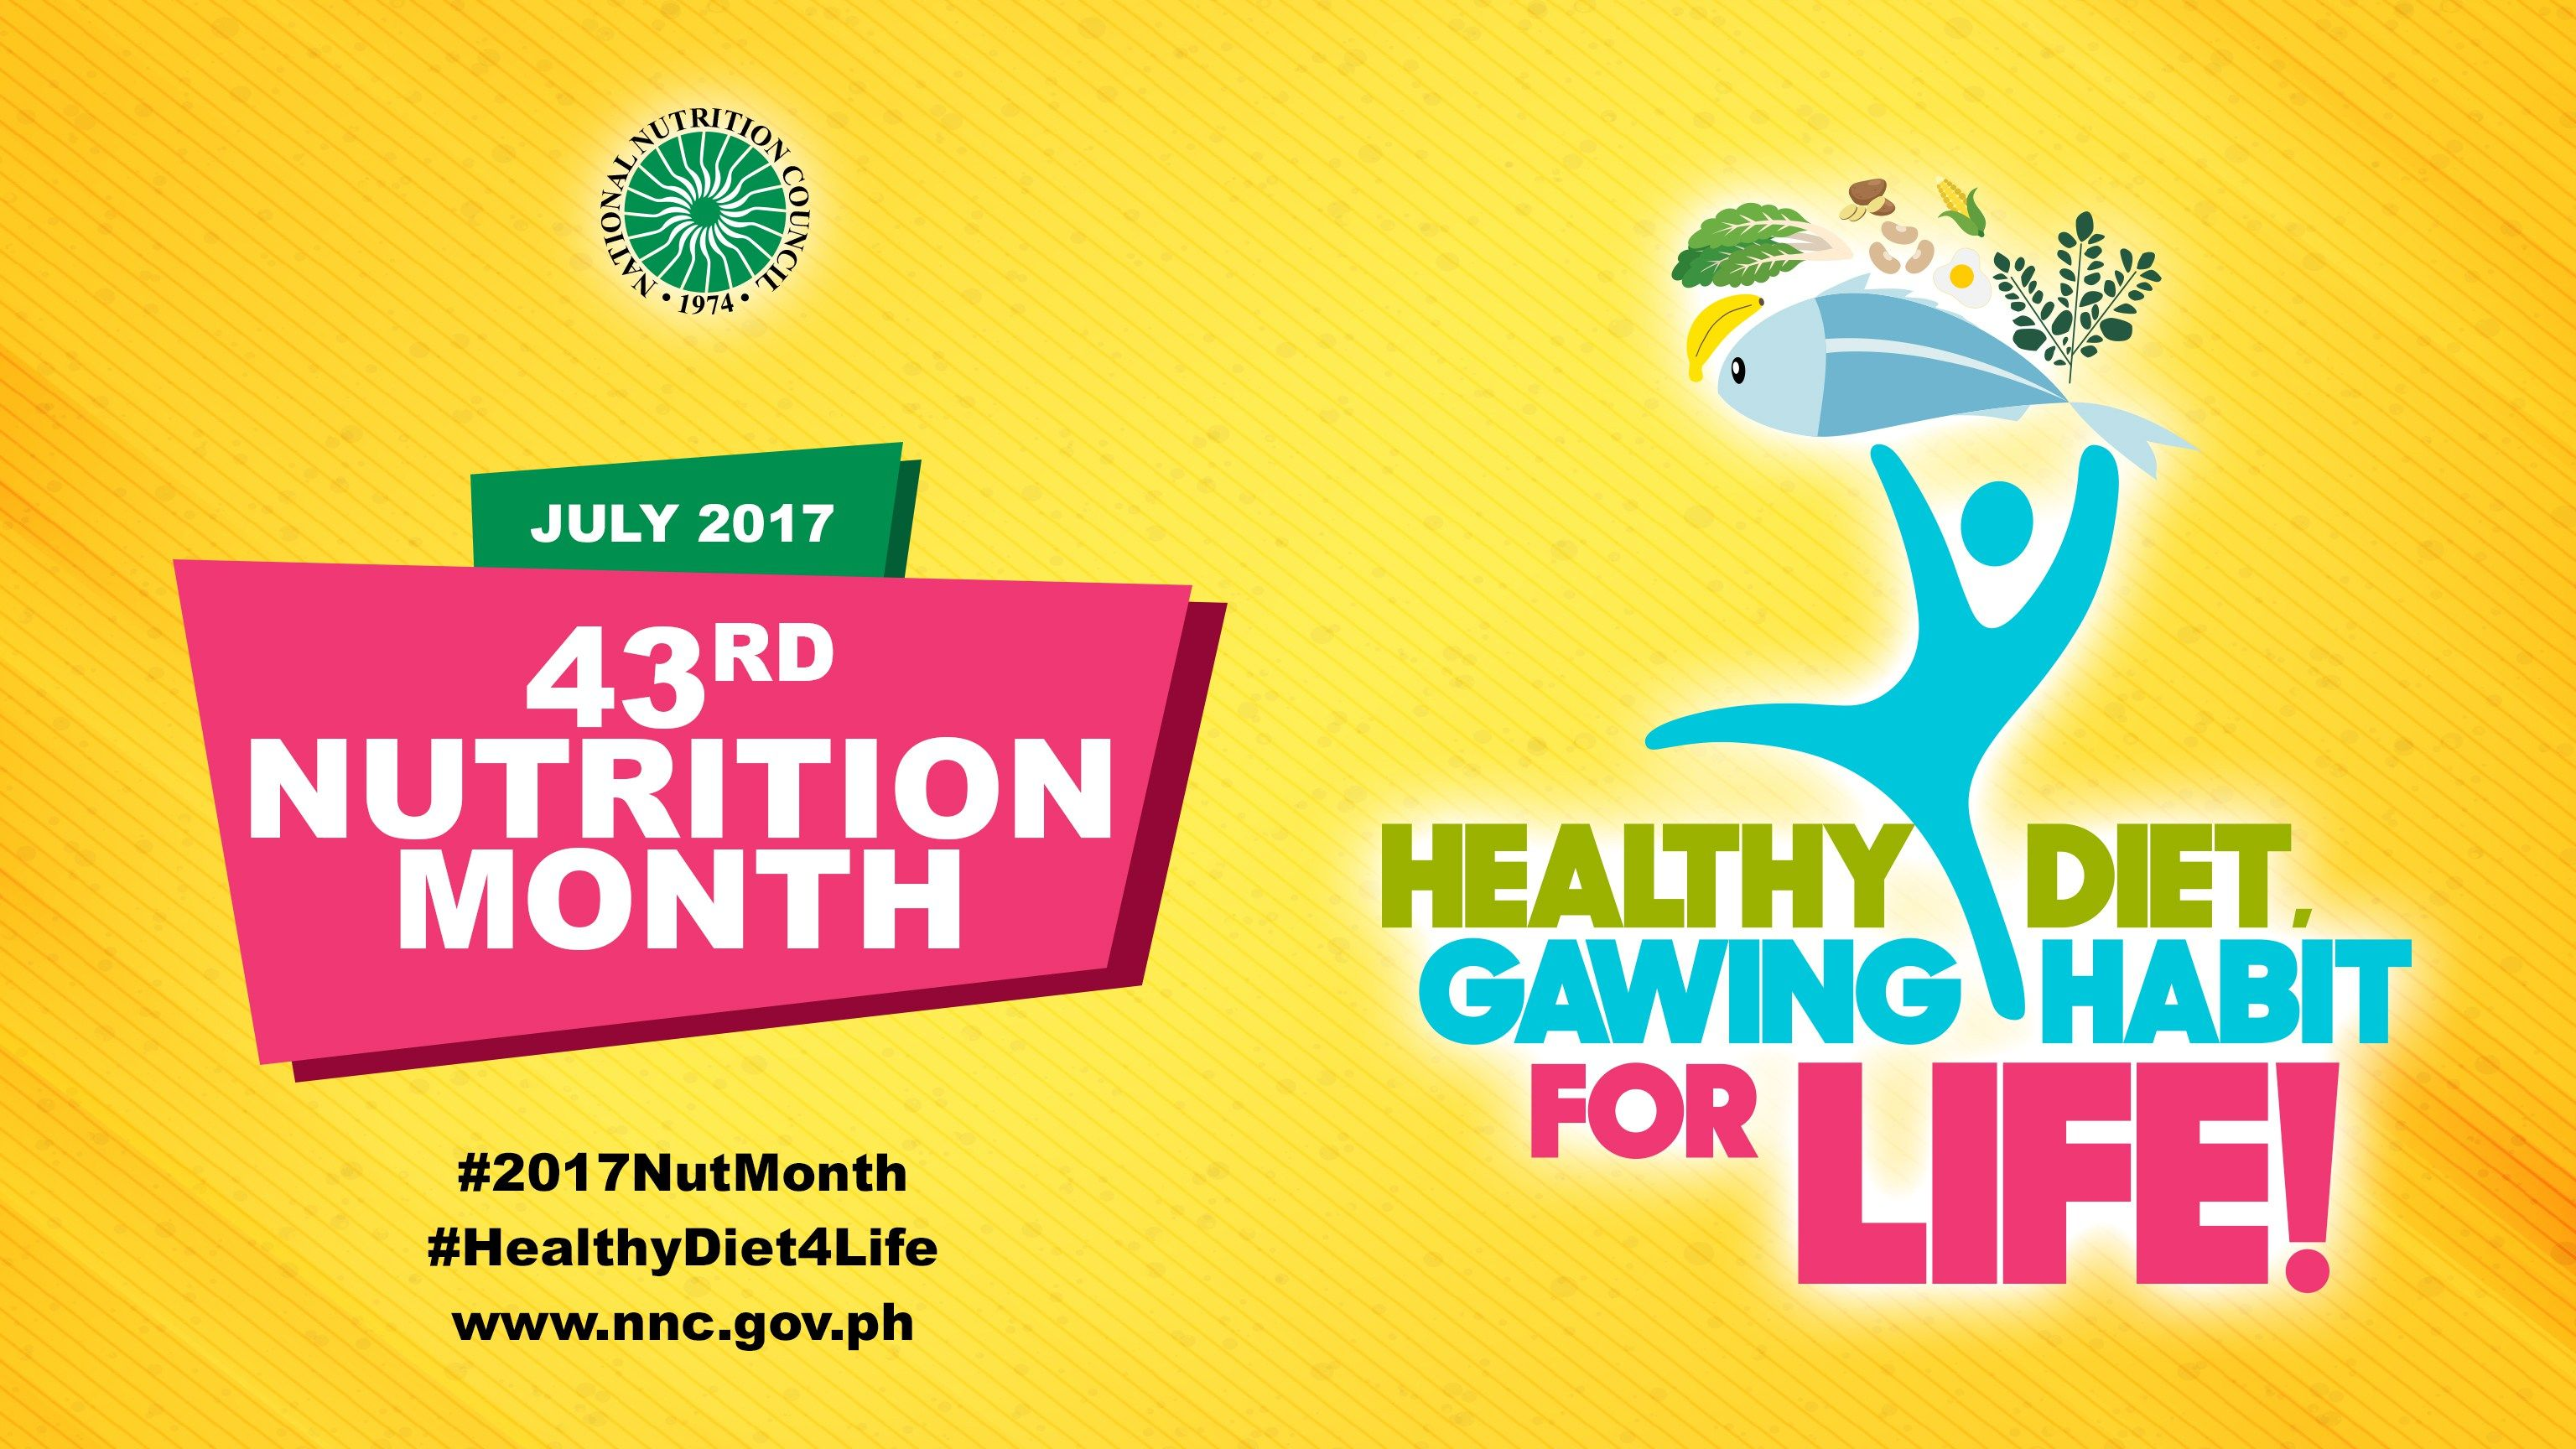 Nutrition Month 2017 3072x1728